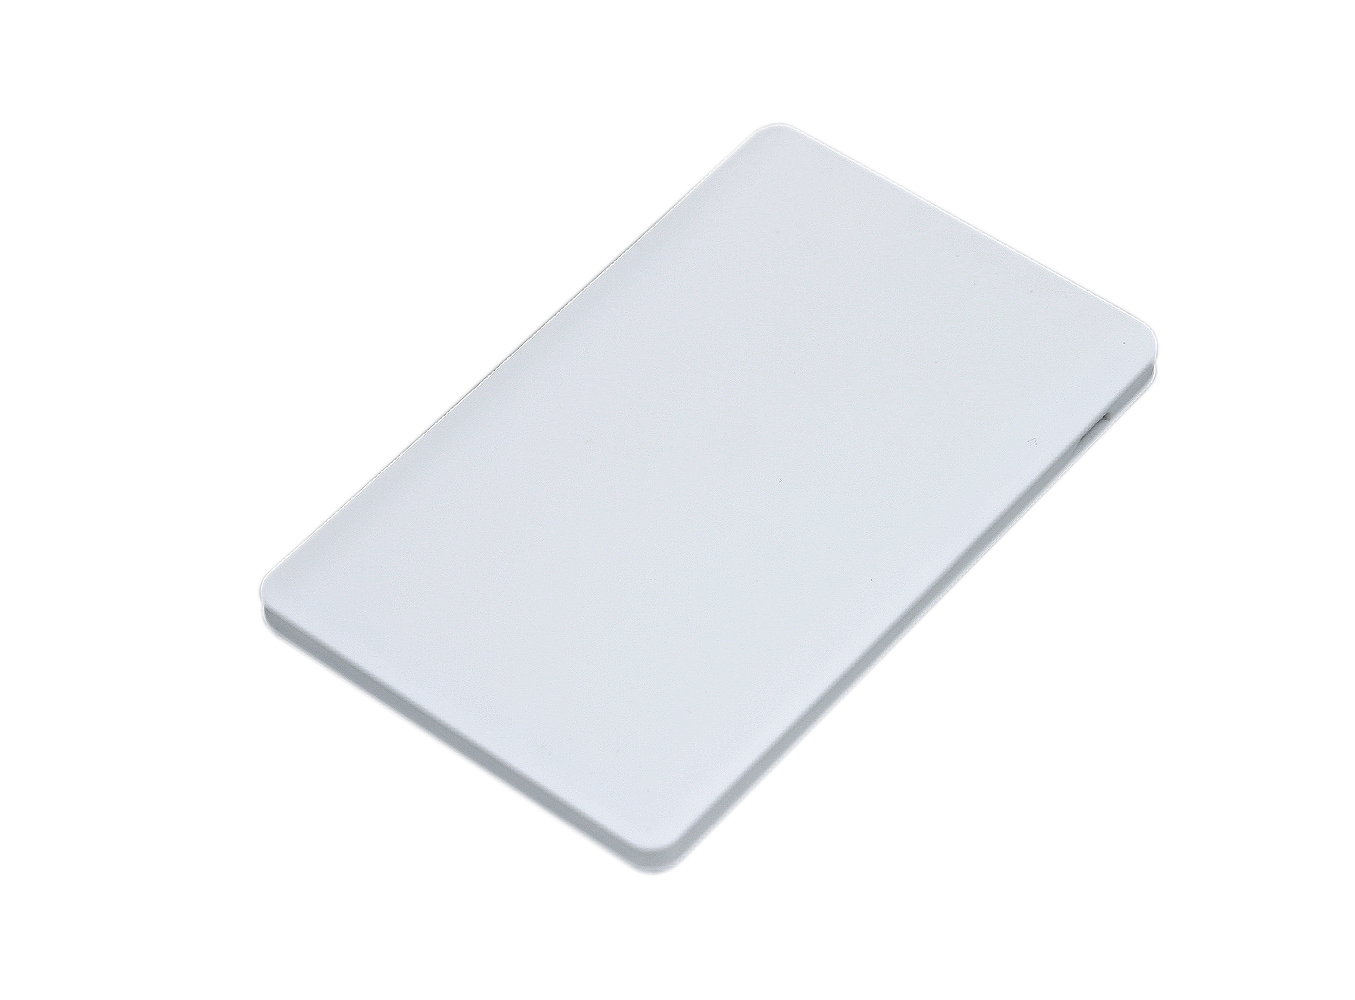 Power Bank Card PB004 2500 mAh